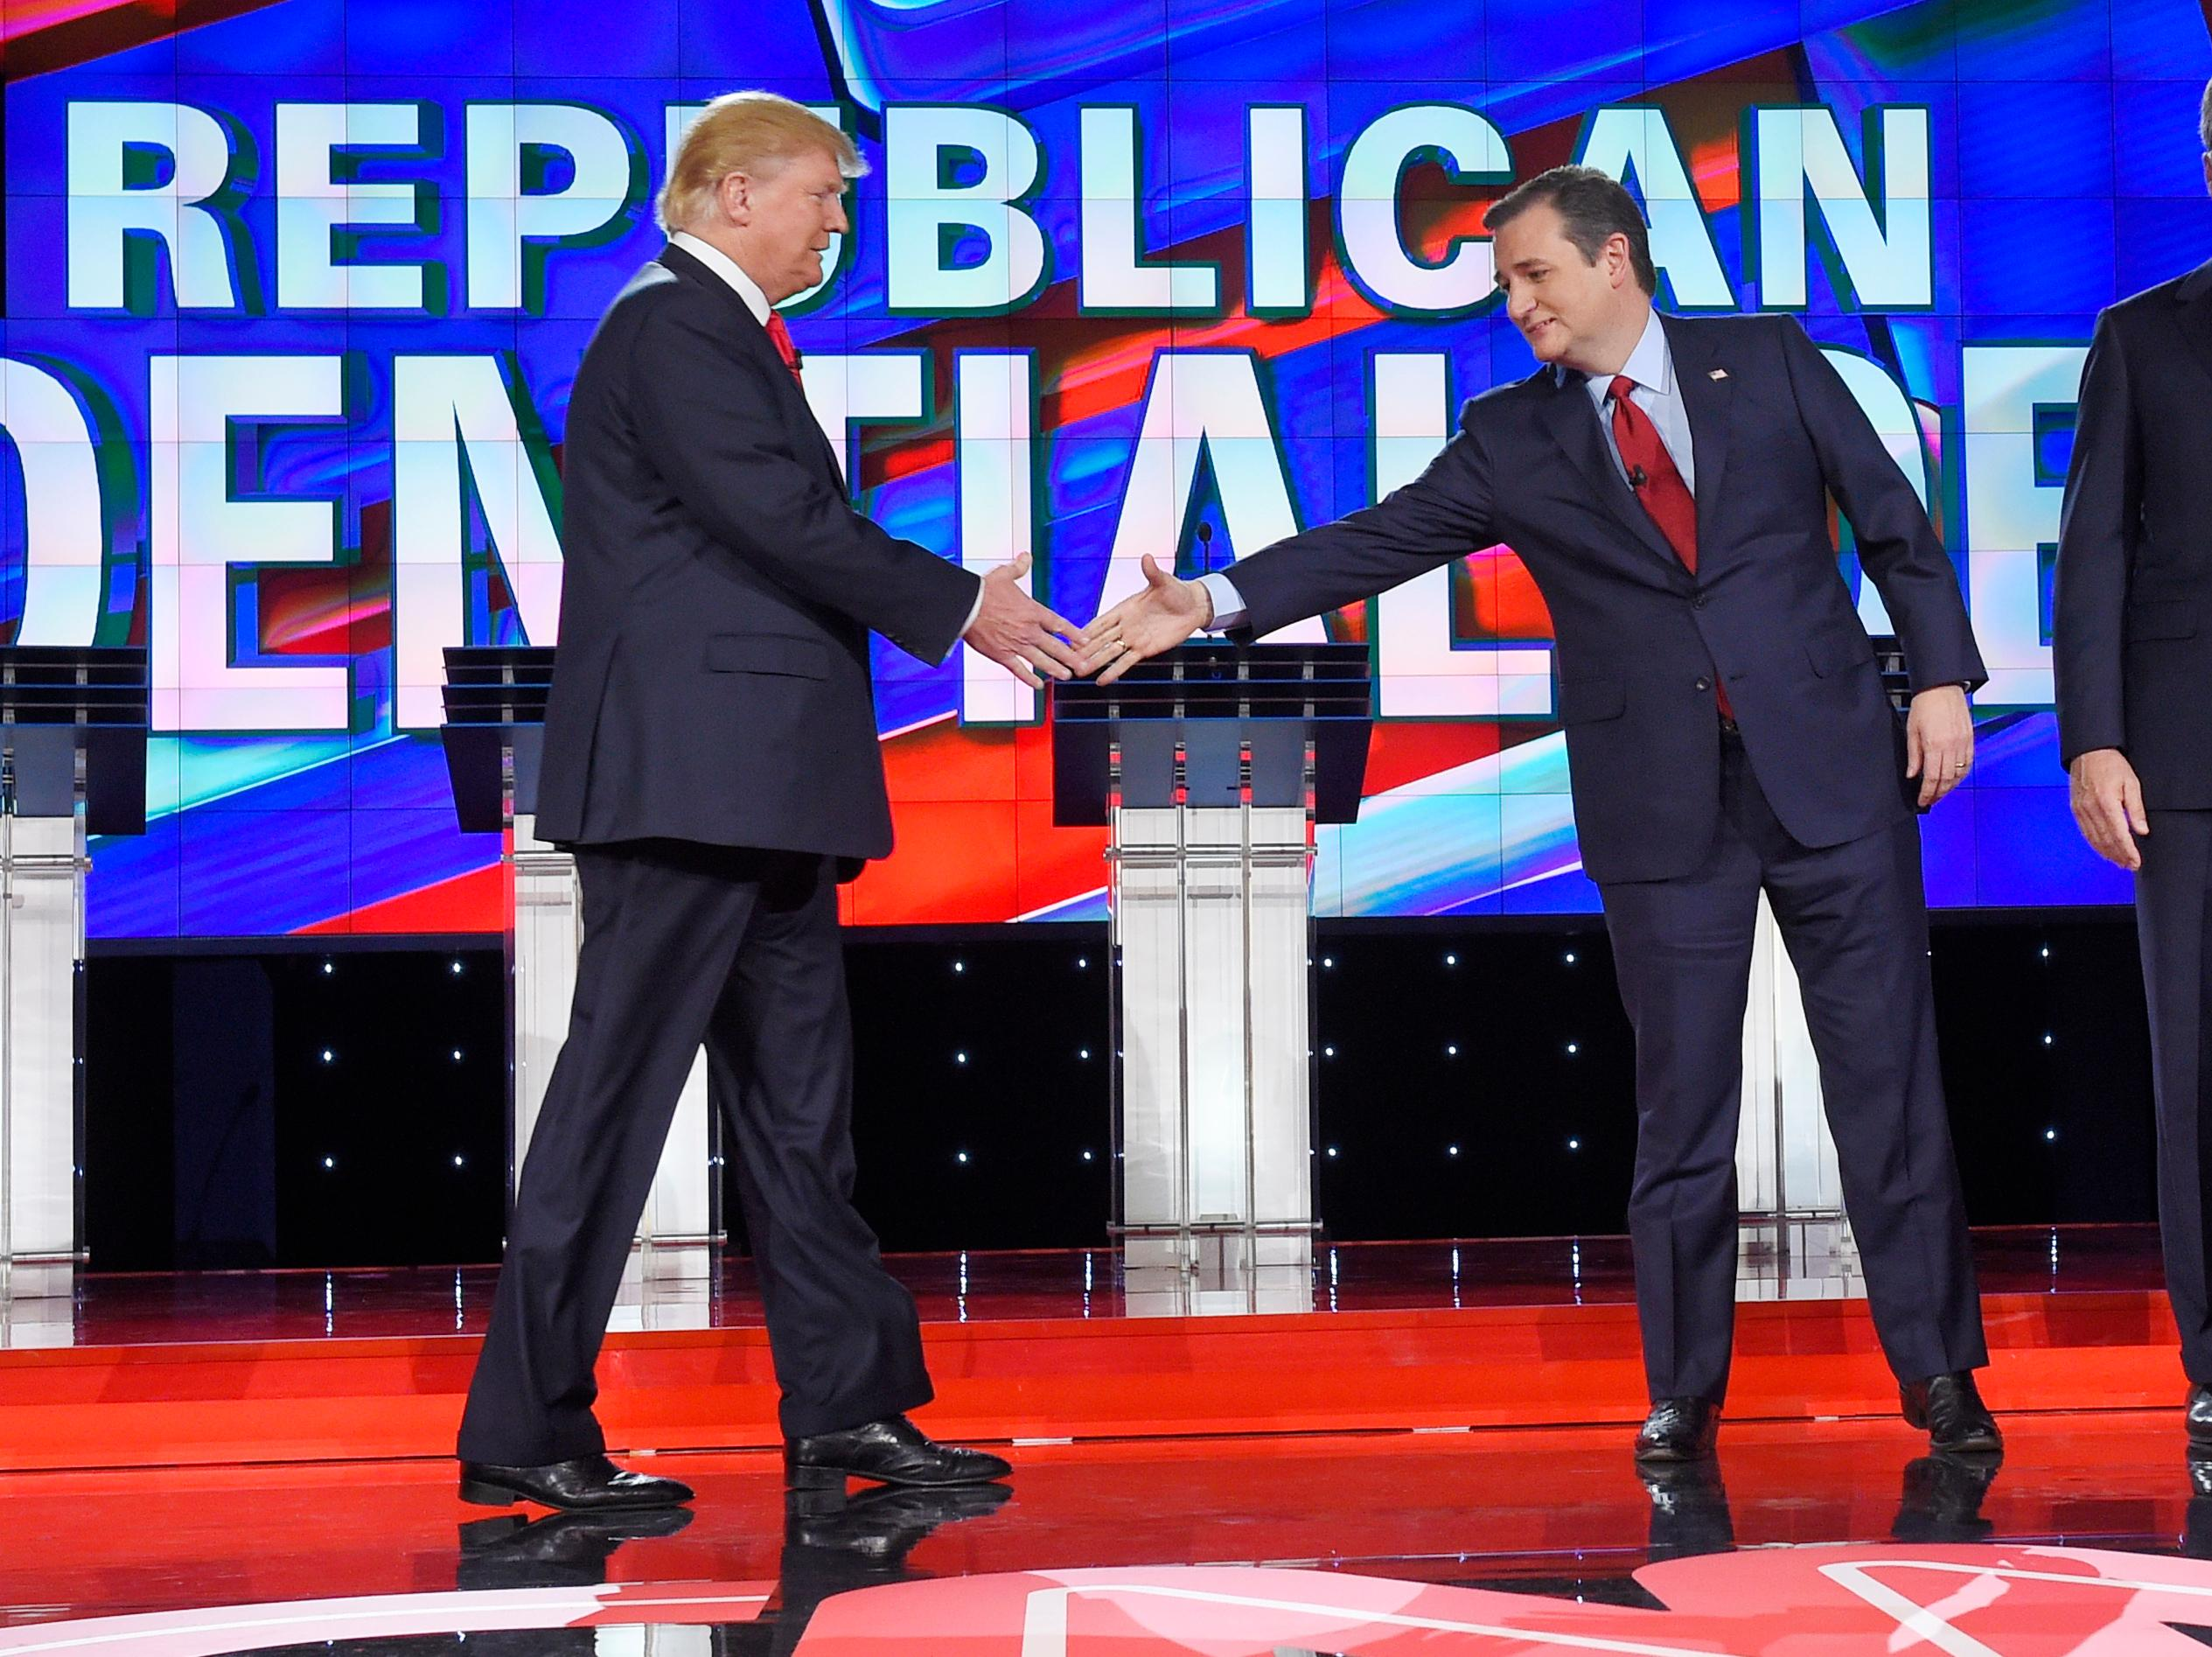 Donald Trump, left, and Ted Cruz shakes hands at the start of the CNN Republican presidential debate at the Venetian Hotel & Casino on Tuesday, Dec. 15, 2015, in Las Vegas. (AP Photo/Mark J. Terrill)